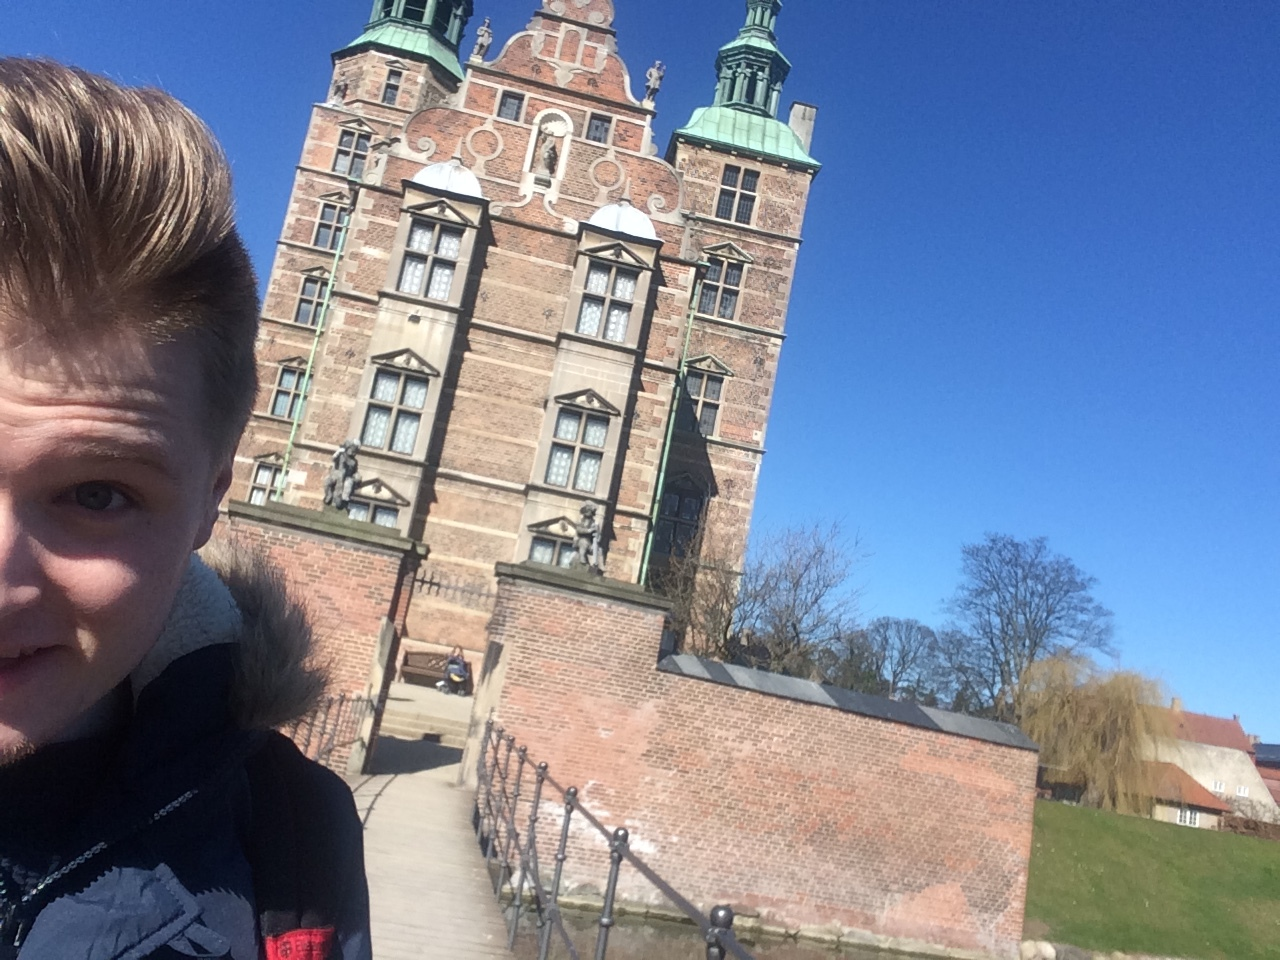 Rosenborg Castle should also be on the itinerary for anyone visiting Copenhagen for the first time.